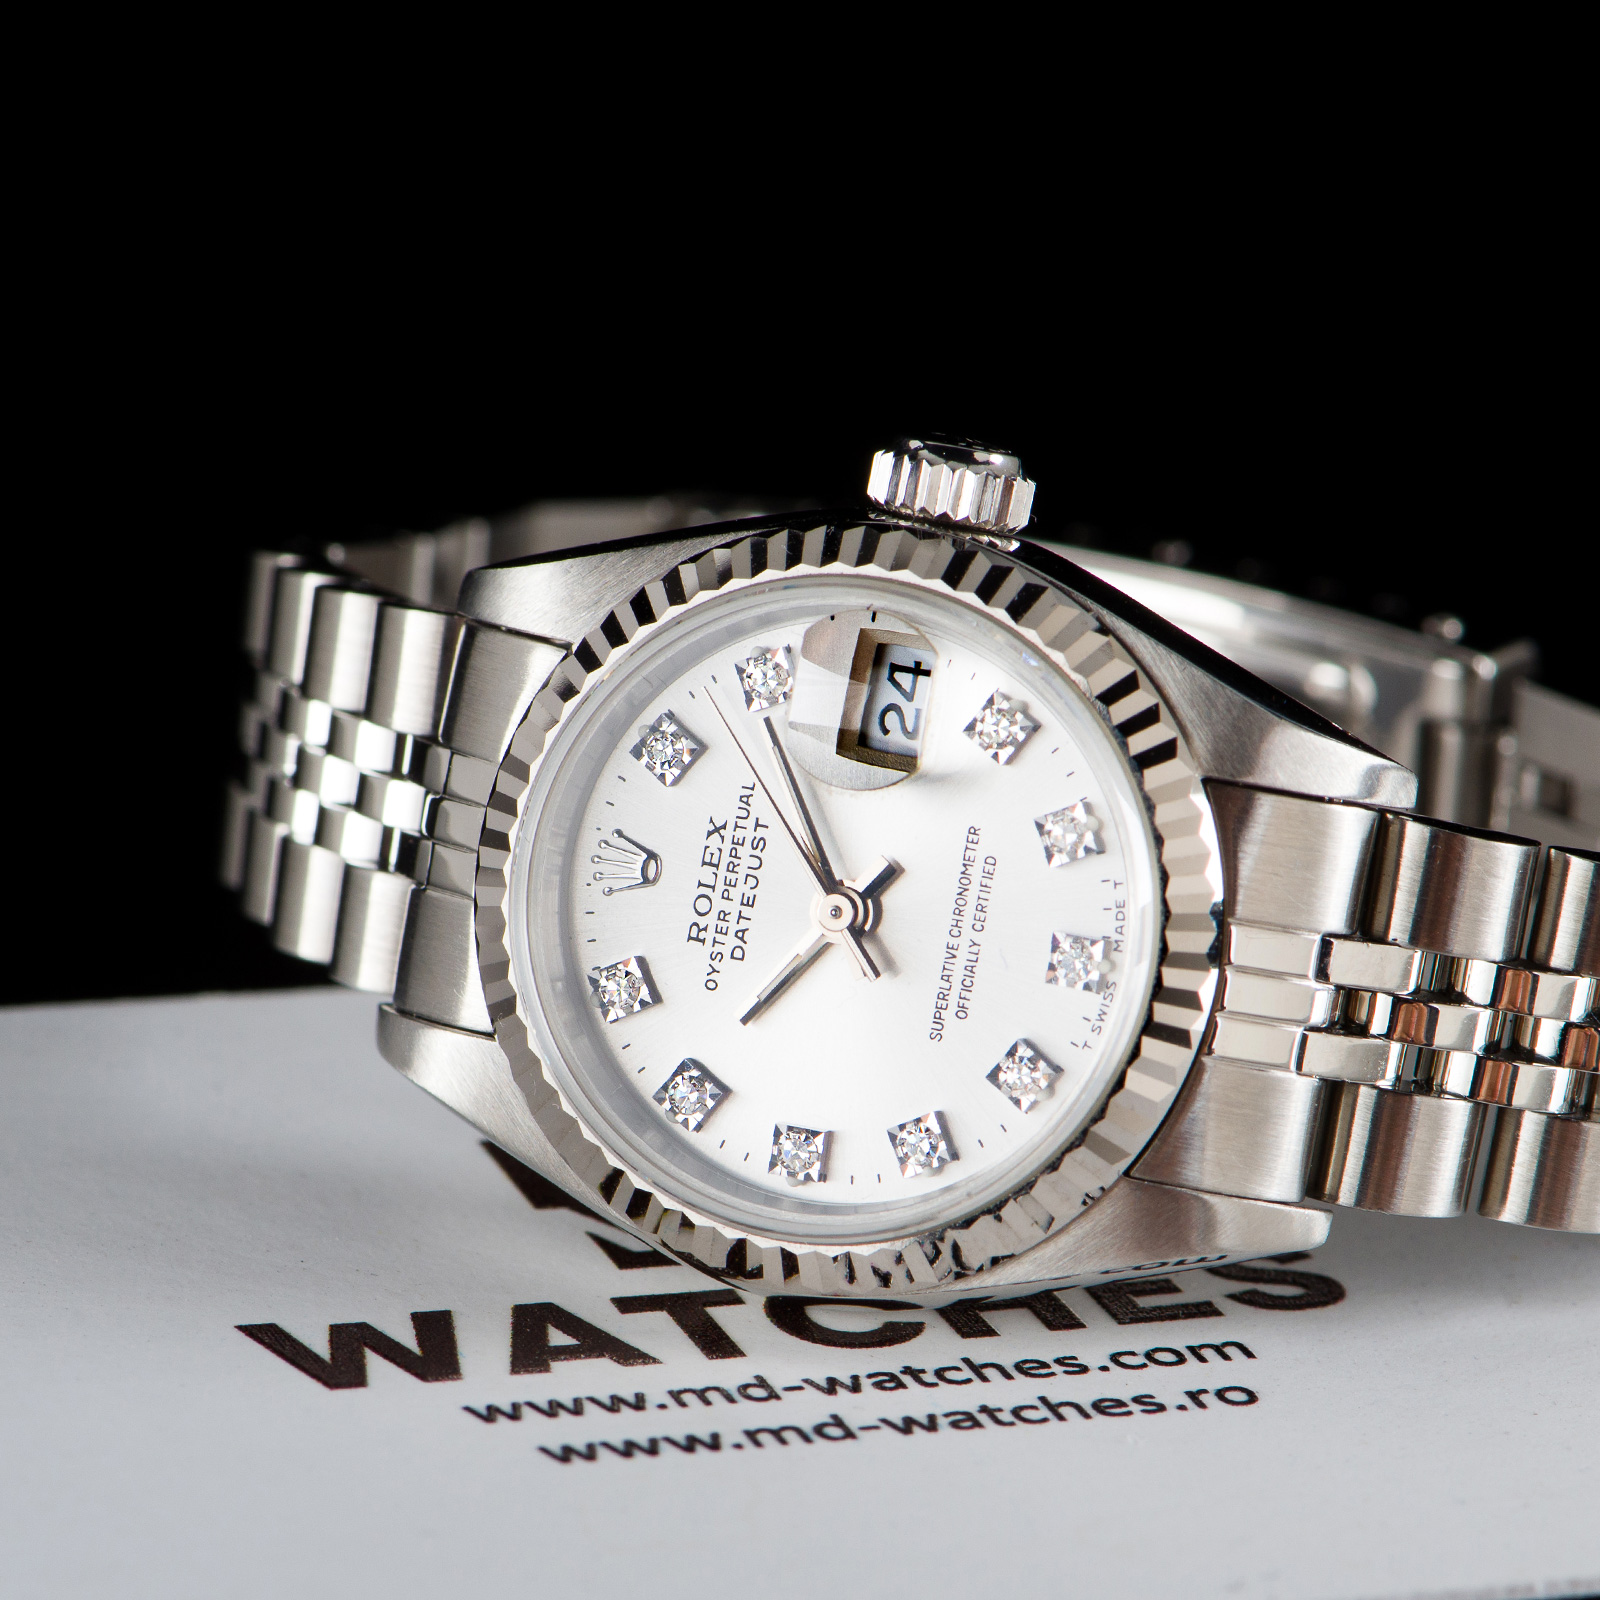 Rolex Oyster Perpetual Datejust With Diamonds Price